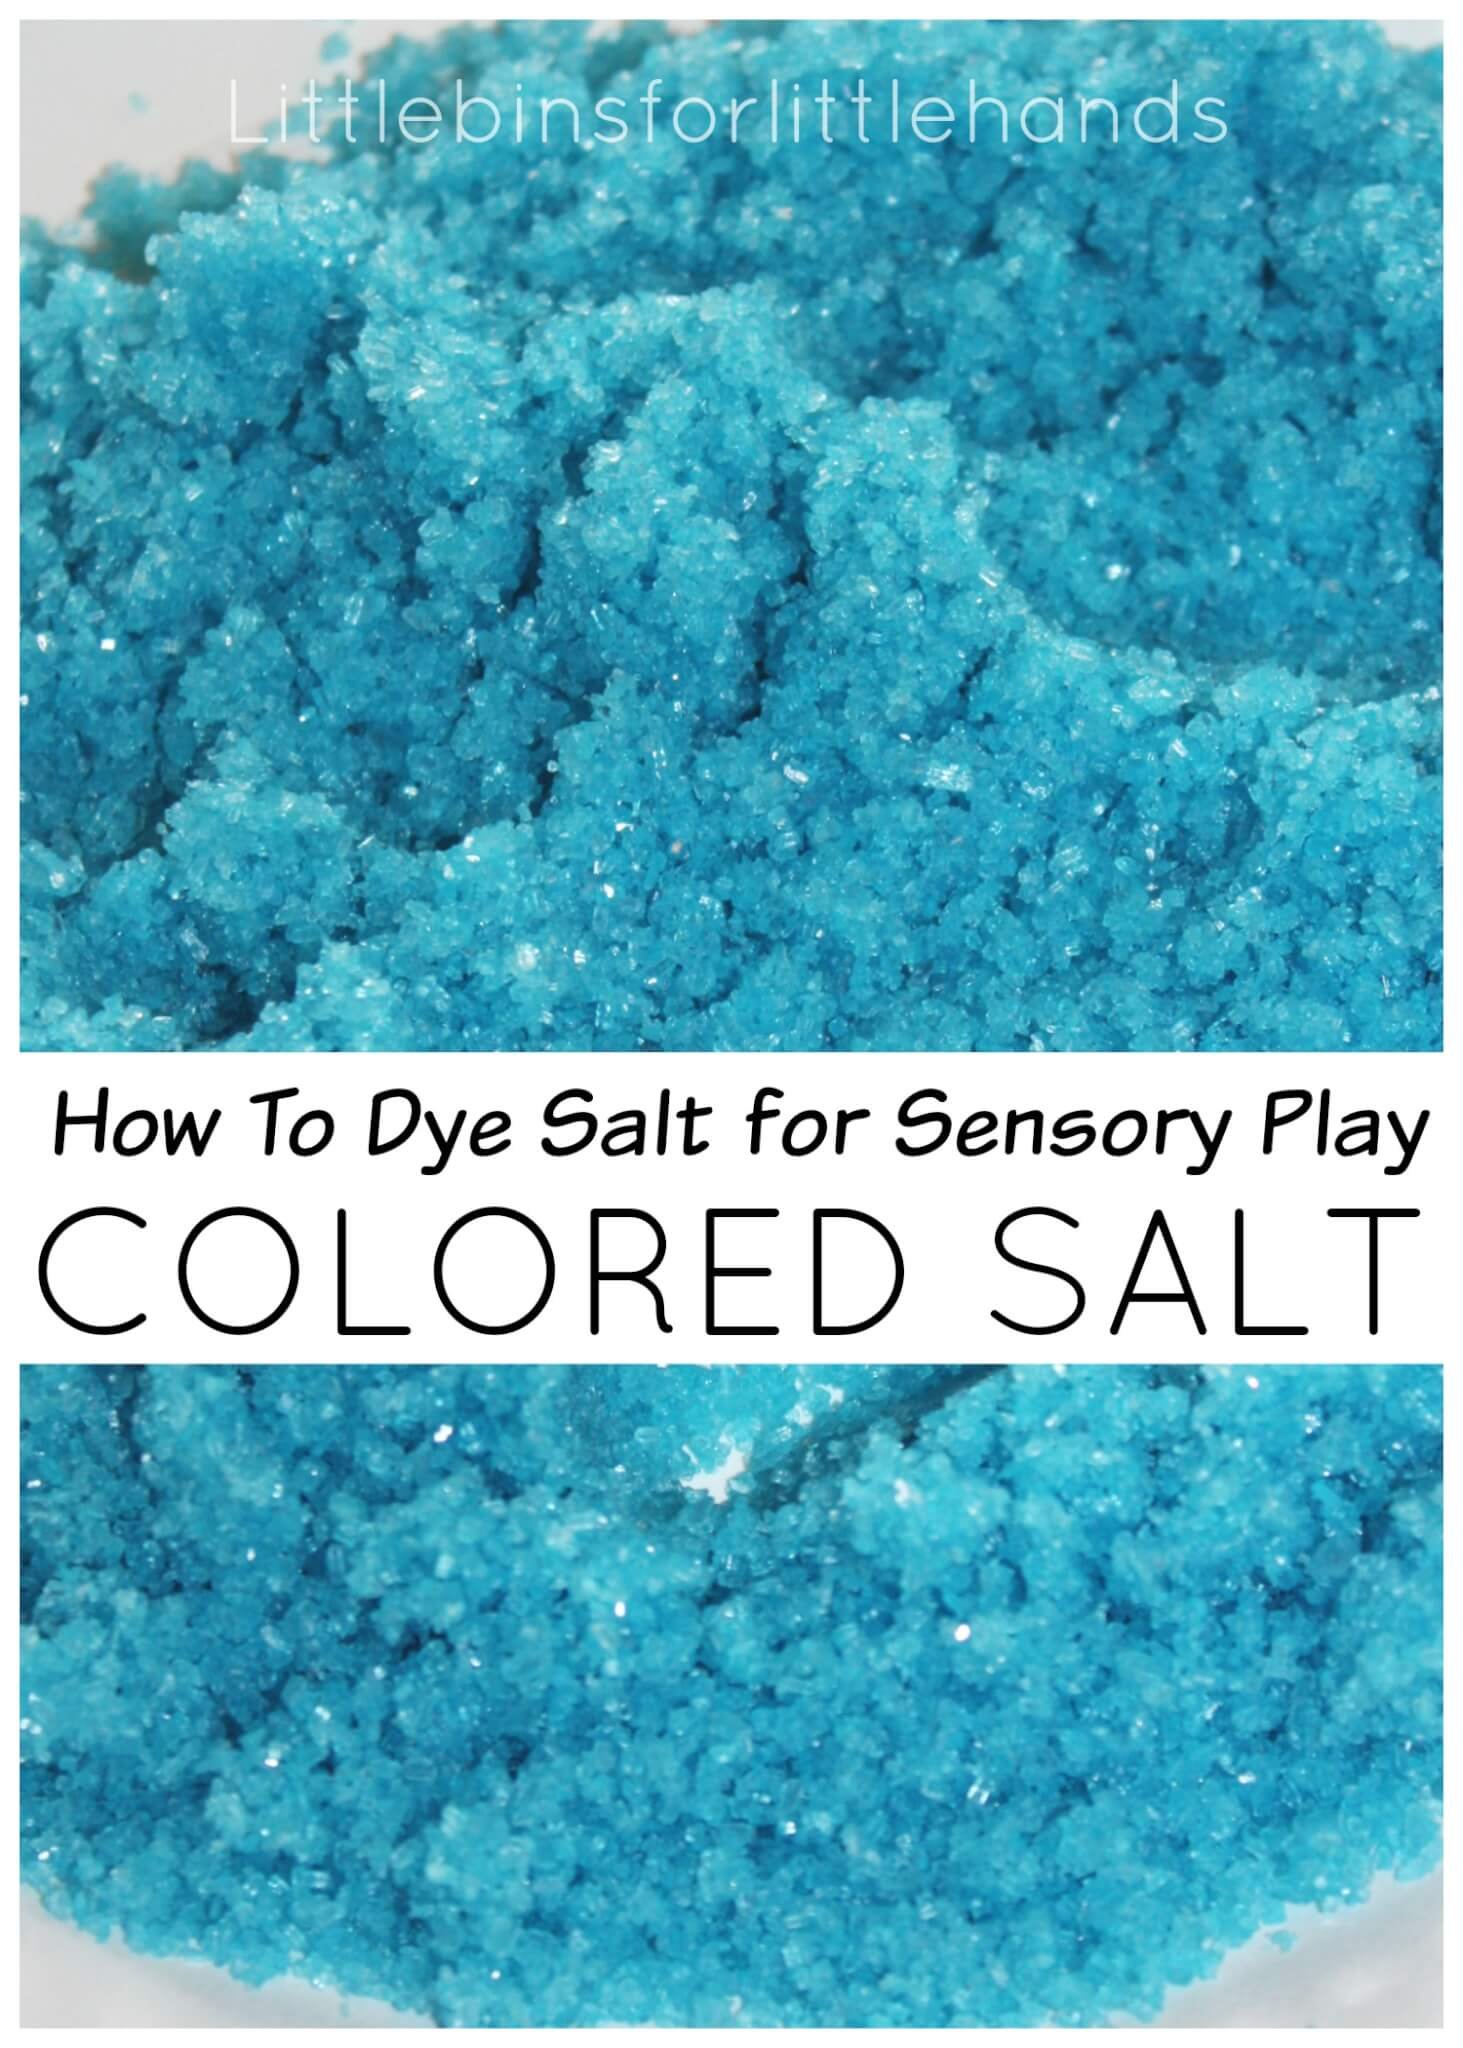 How to Dye Salt for Colored Sensory Play